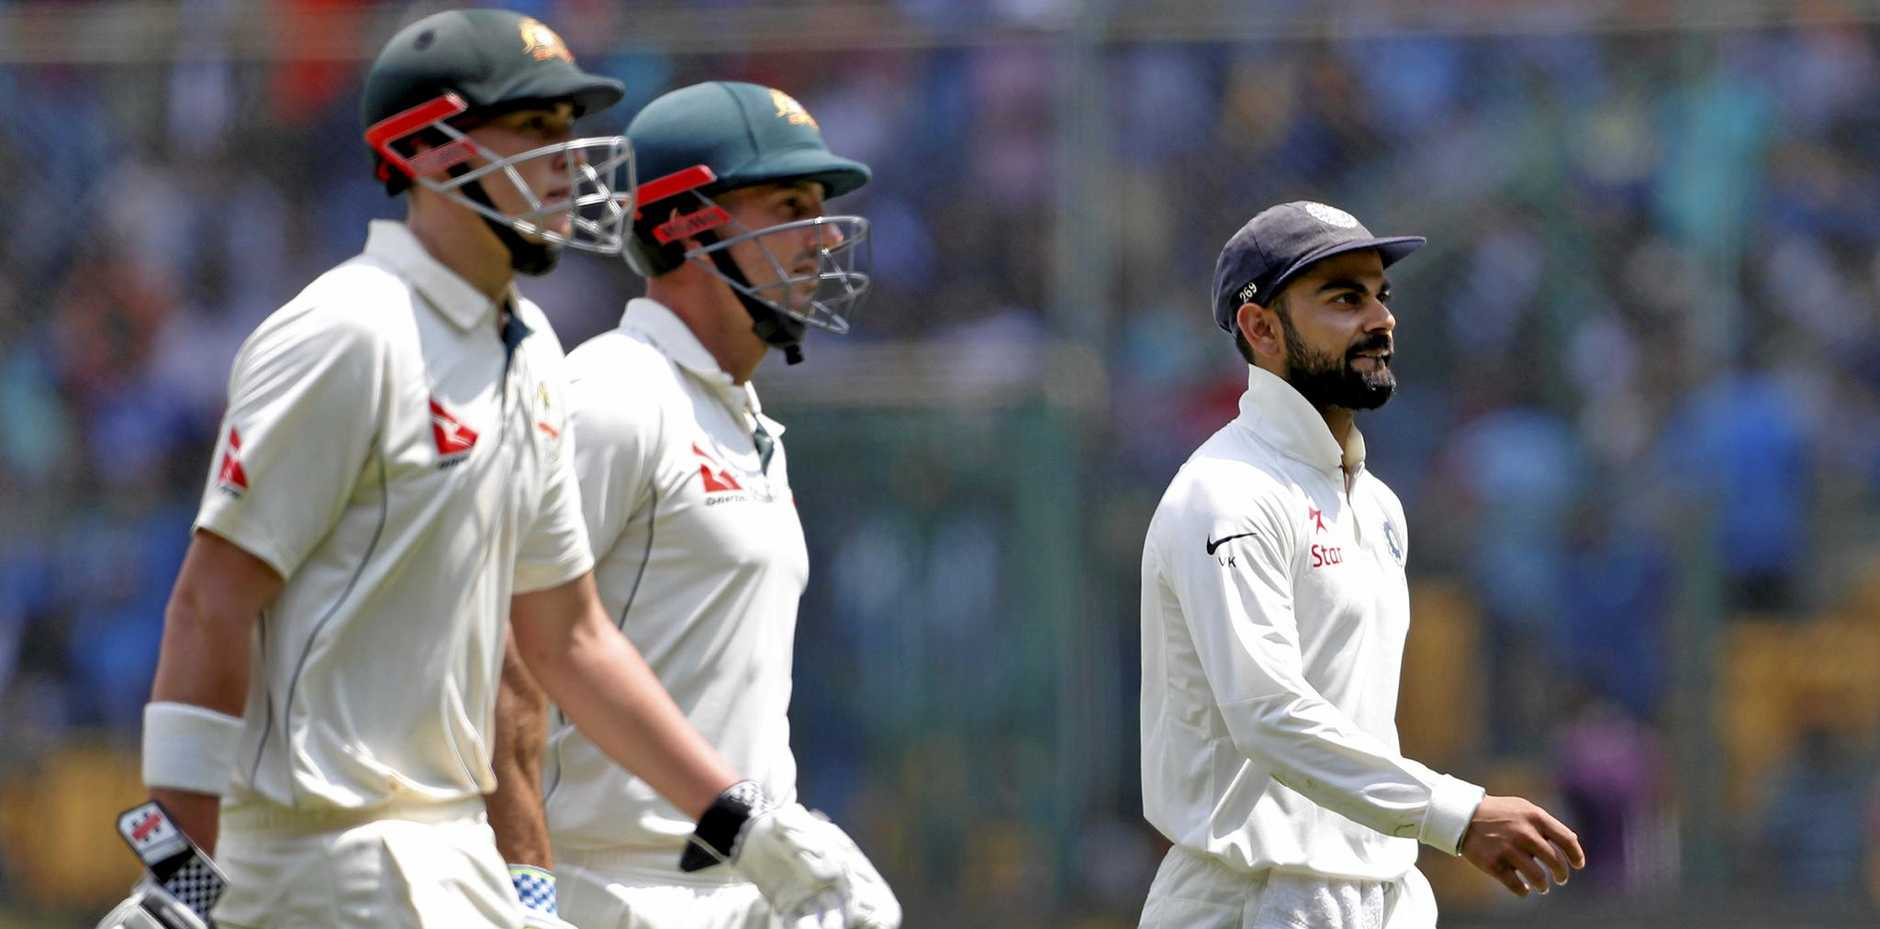 India's captain Virat Kohli, right, walks back with Australia's batsmen Matt Renshaw, left, and Shaun Marsh for the lunch break during the second day of their second Test cricket match in Bangalore